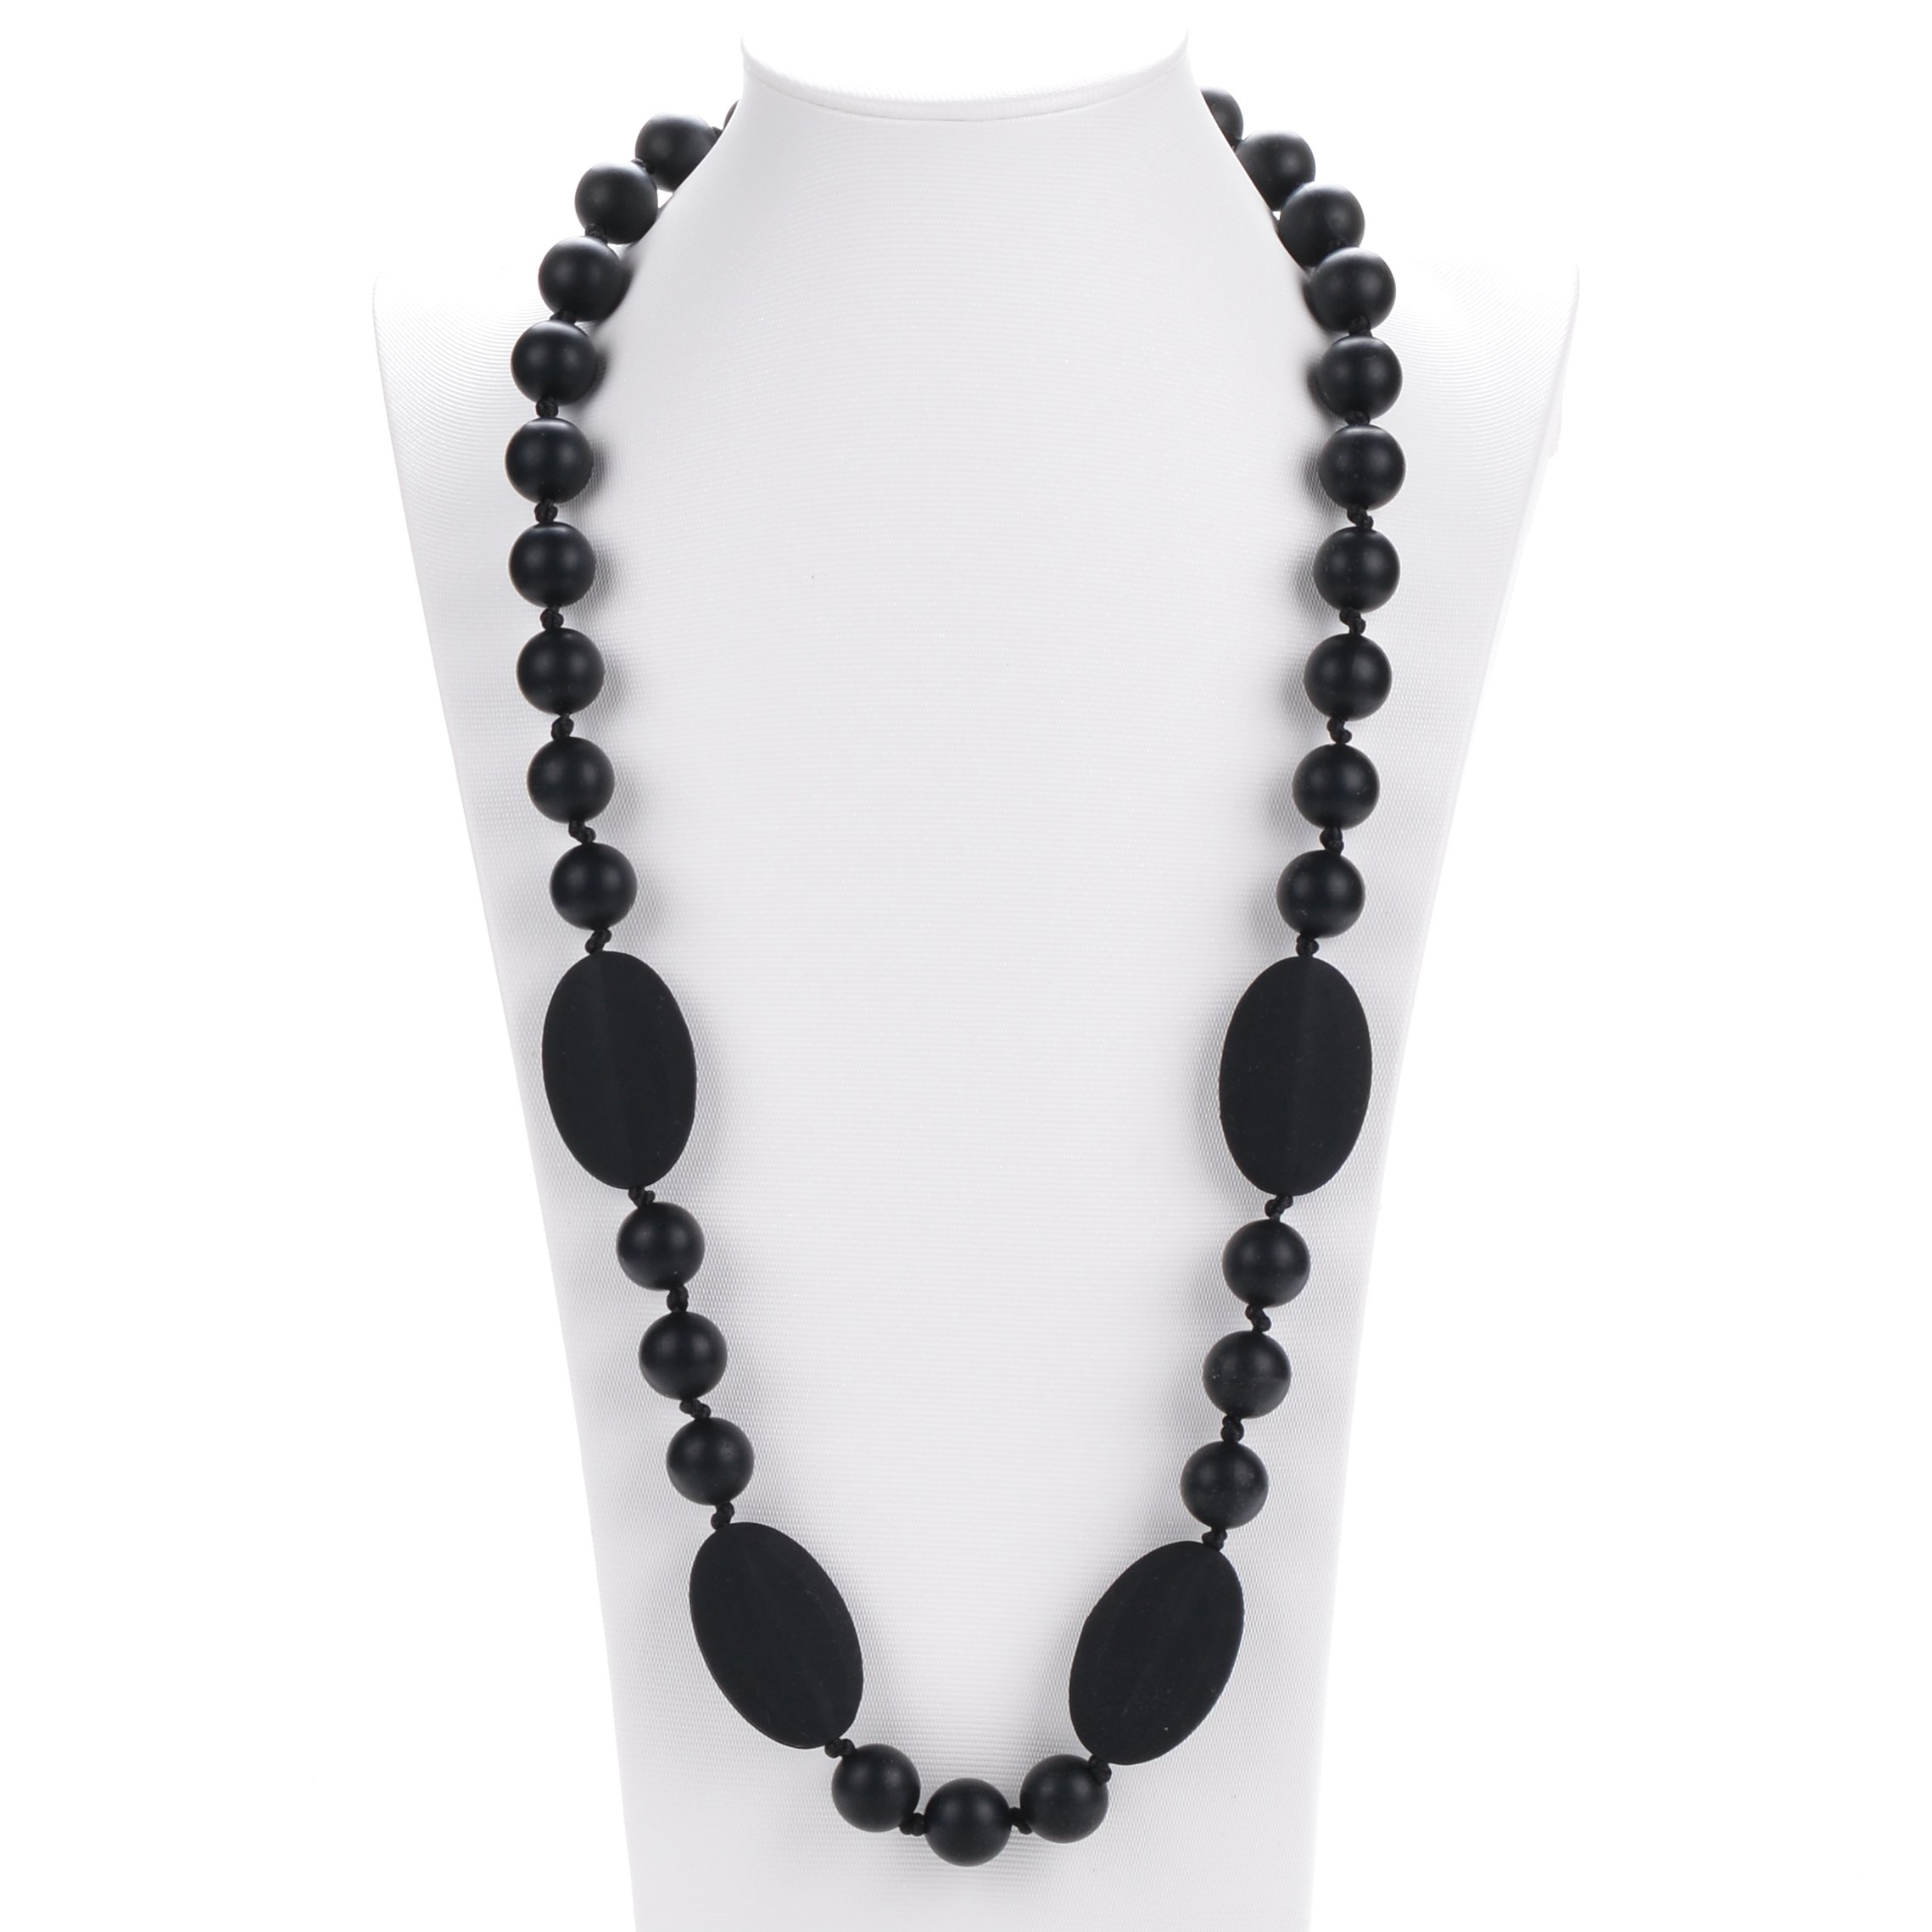 Consider It Maid Silicone Teething Necklace for Mom to Wear - FREE E-BOOK - BPA FREE and FDA Approved - Peas in a Pod (Black)